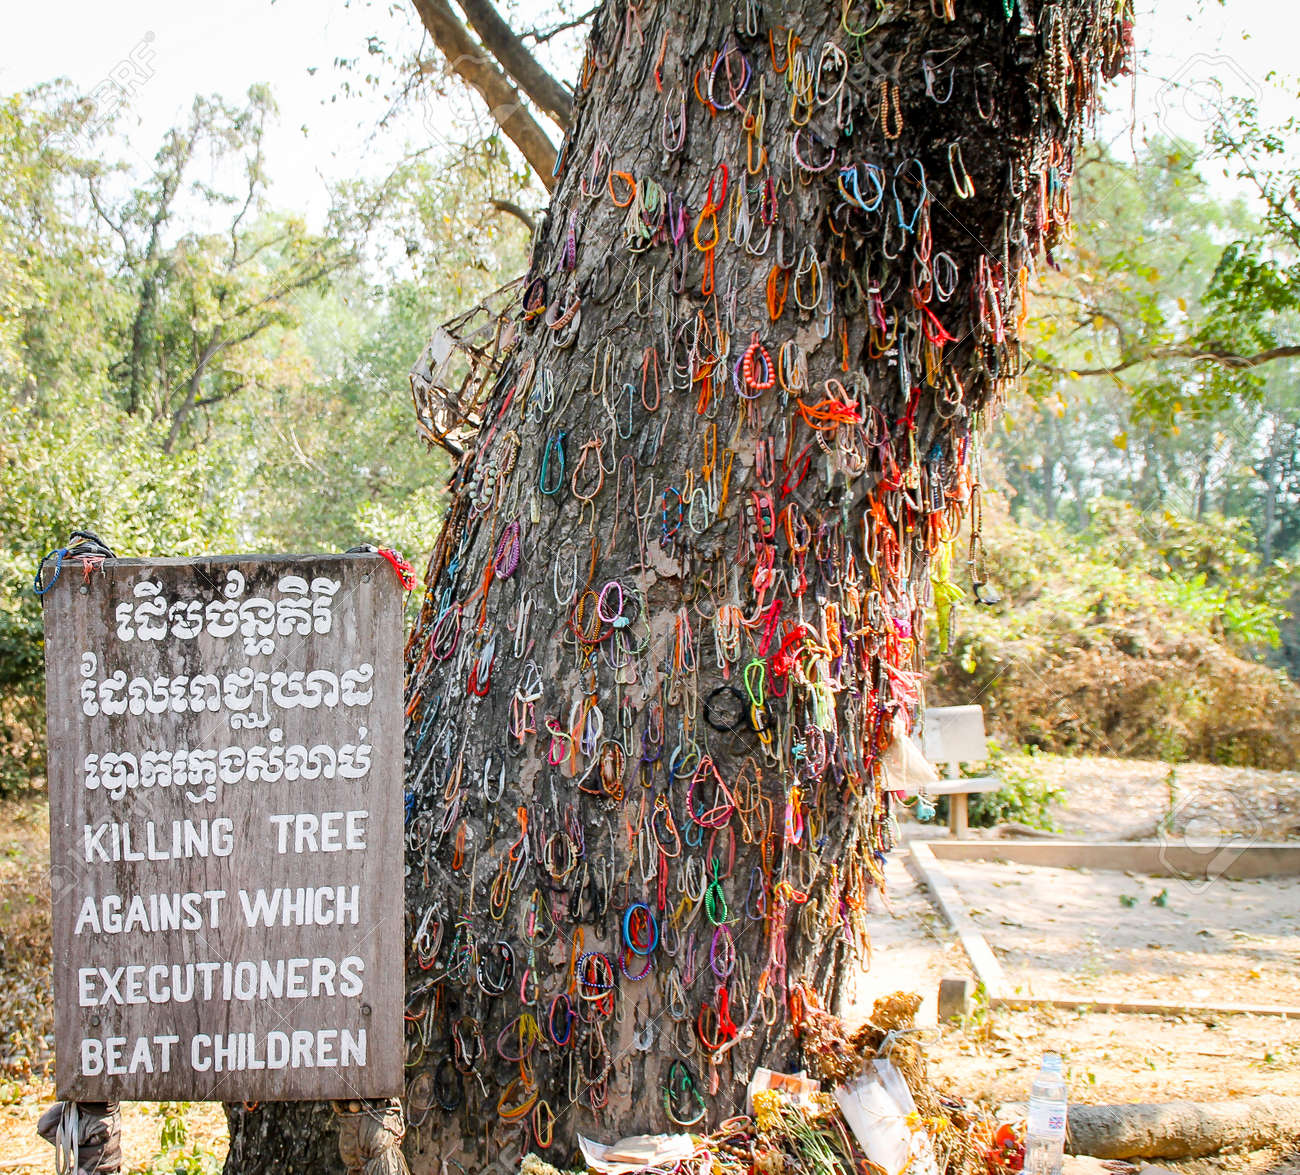 Killing tree against which executioners beat children, Phnom Penh - 54690635